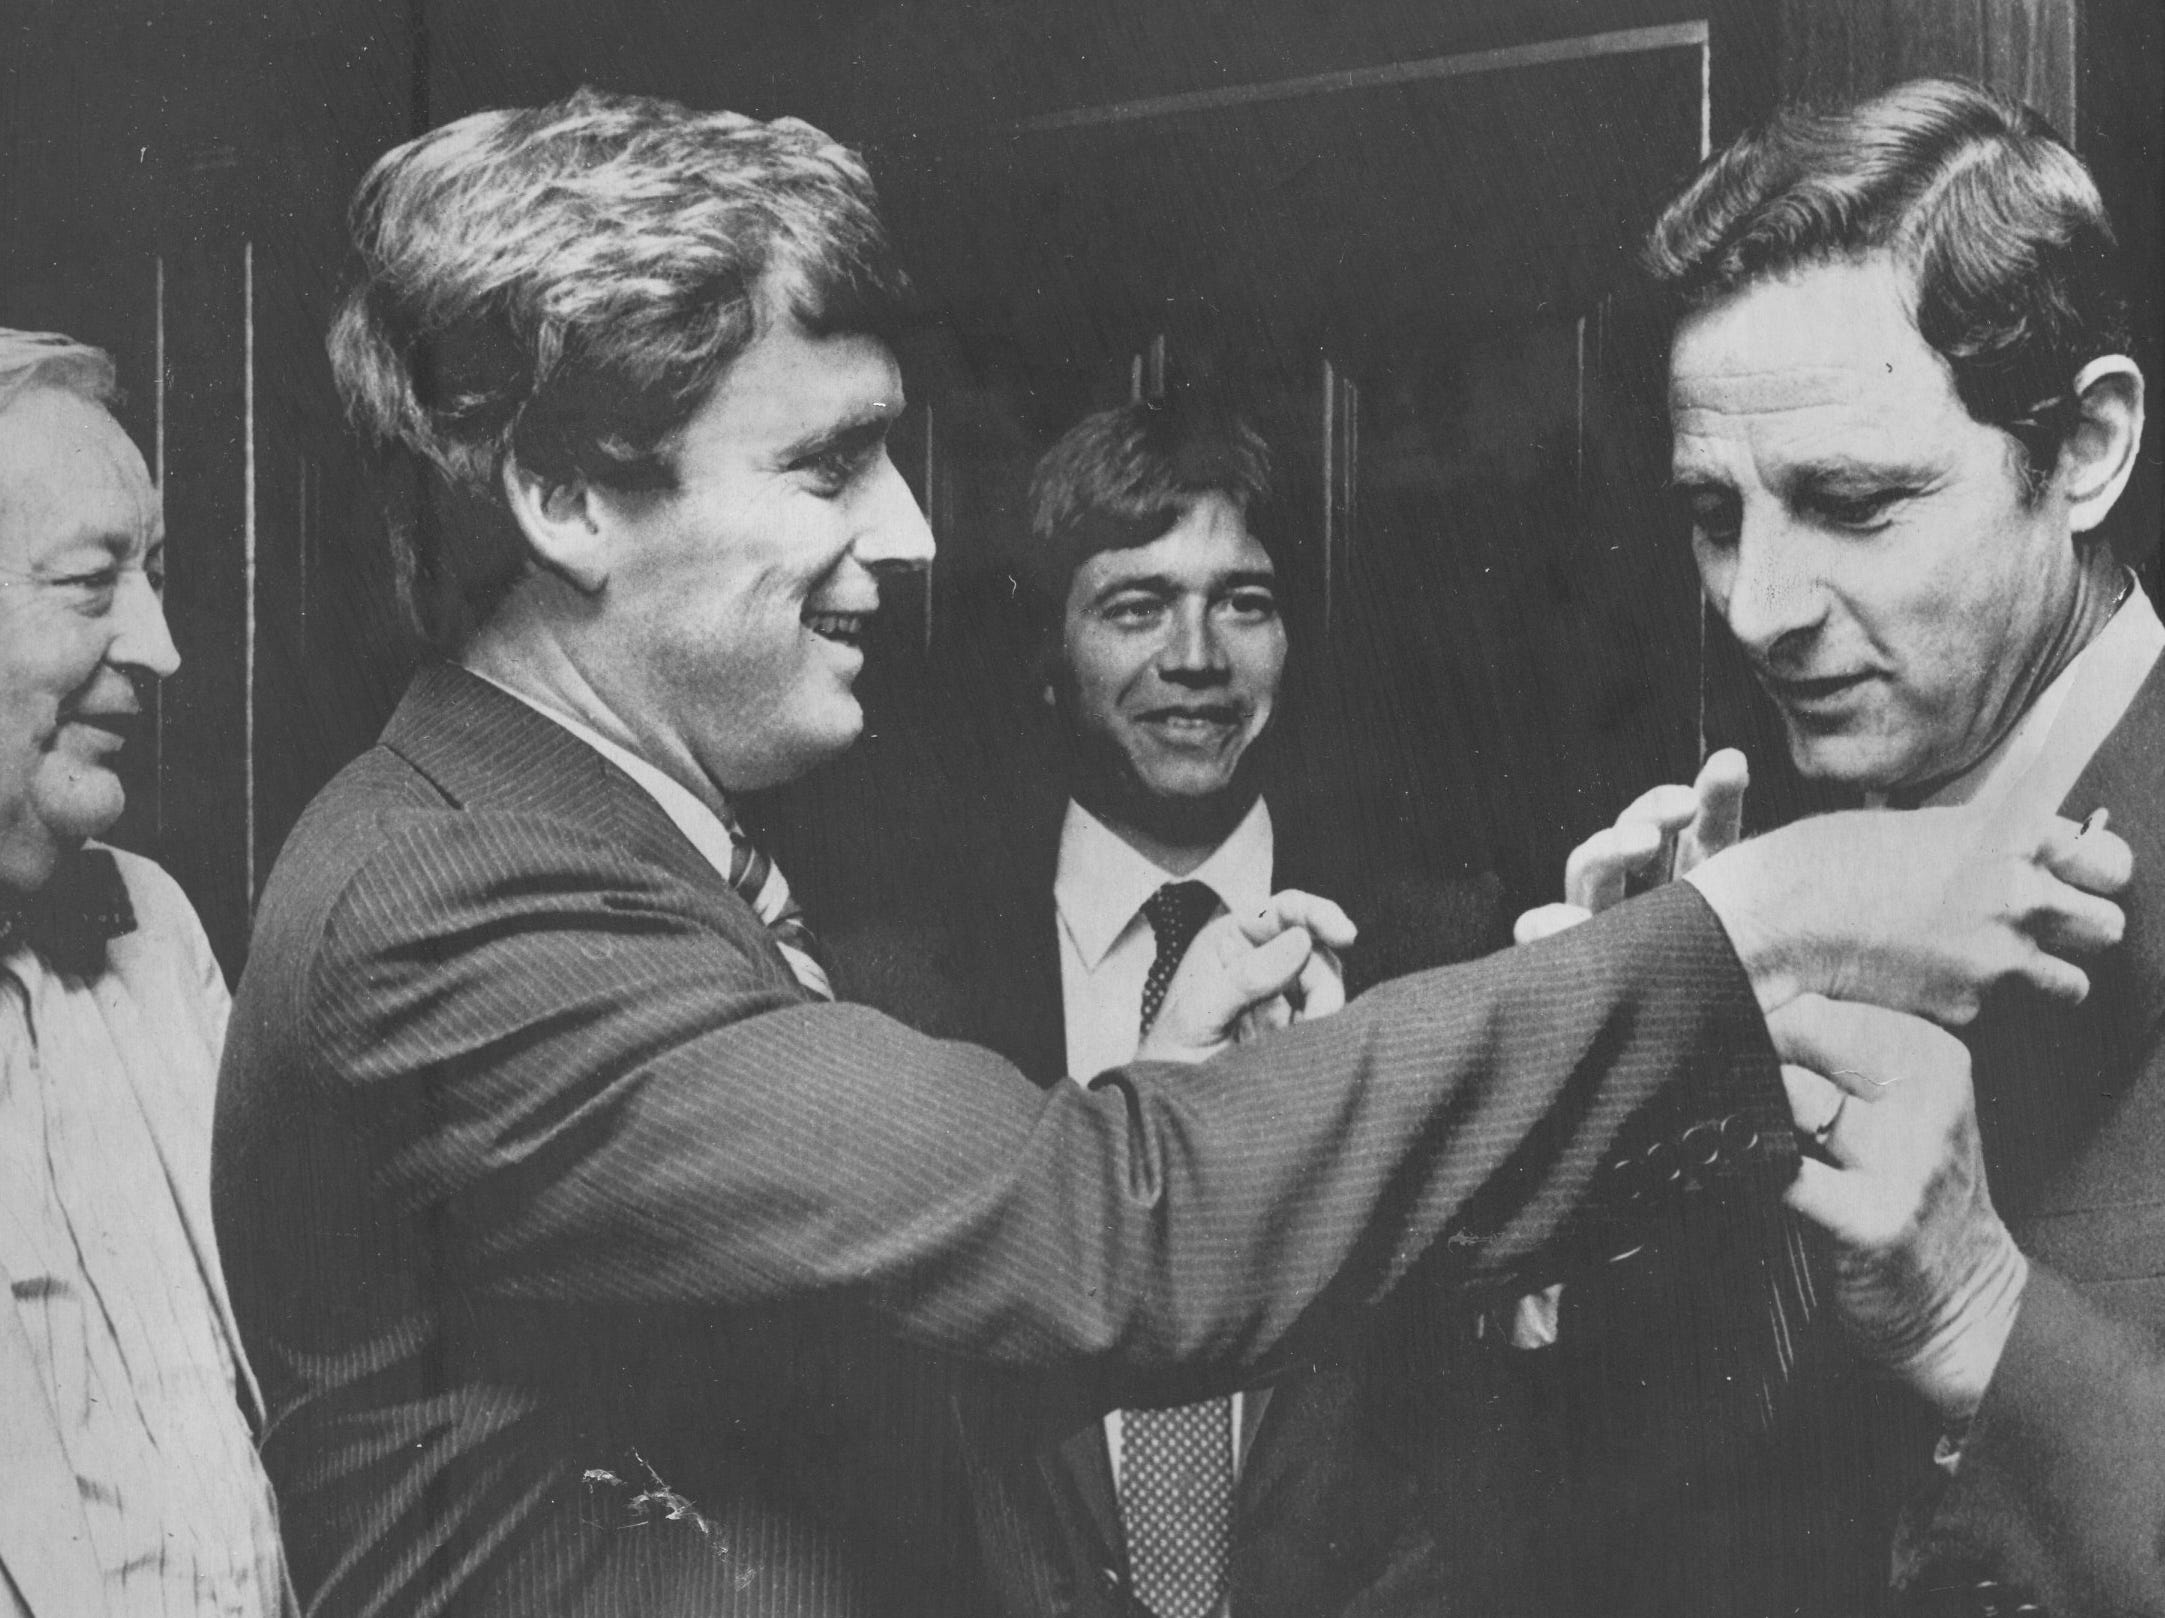 Merrillville, Ind. June 2, 1980: Meeting in hallway between their separate presentations to the AP Managing Editors at Convention in Merrillville, Dan Quayle sticks his campaign label on Birch Bayh's lapel. It did not stay there long.